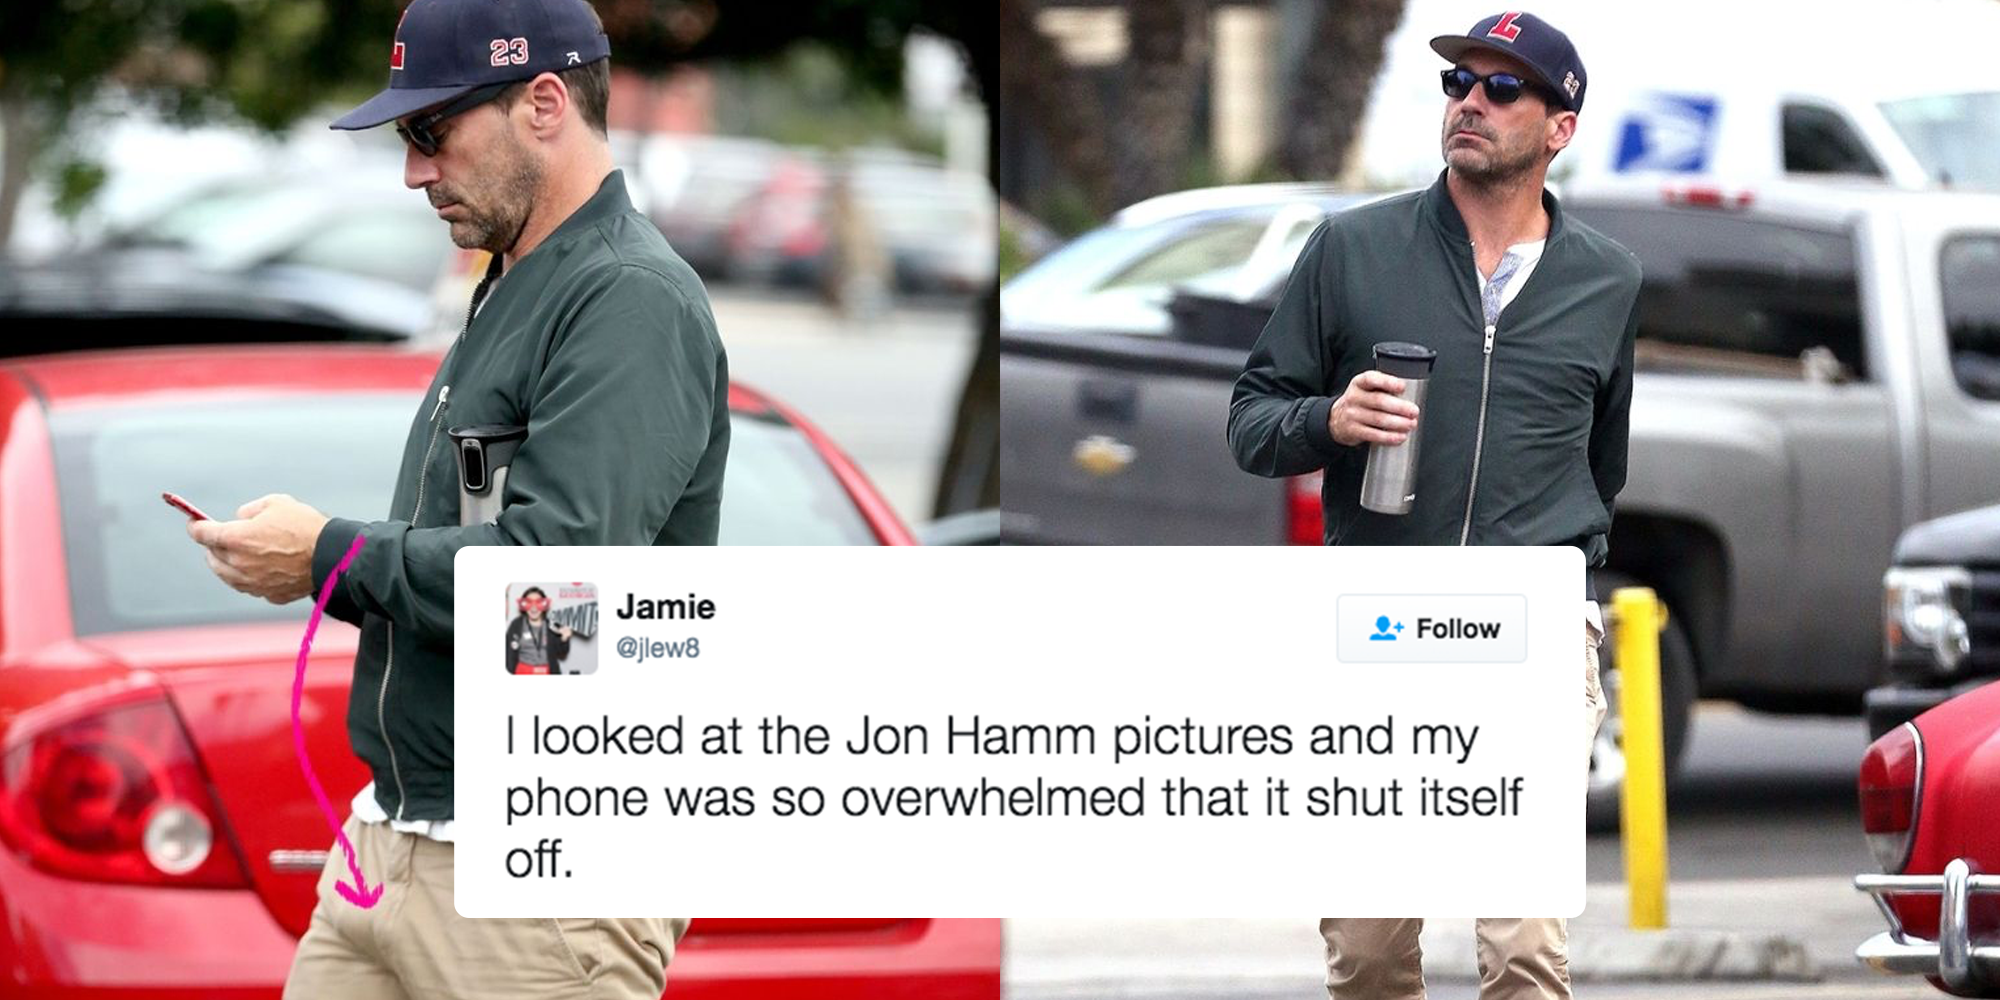 John hamm big dick